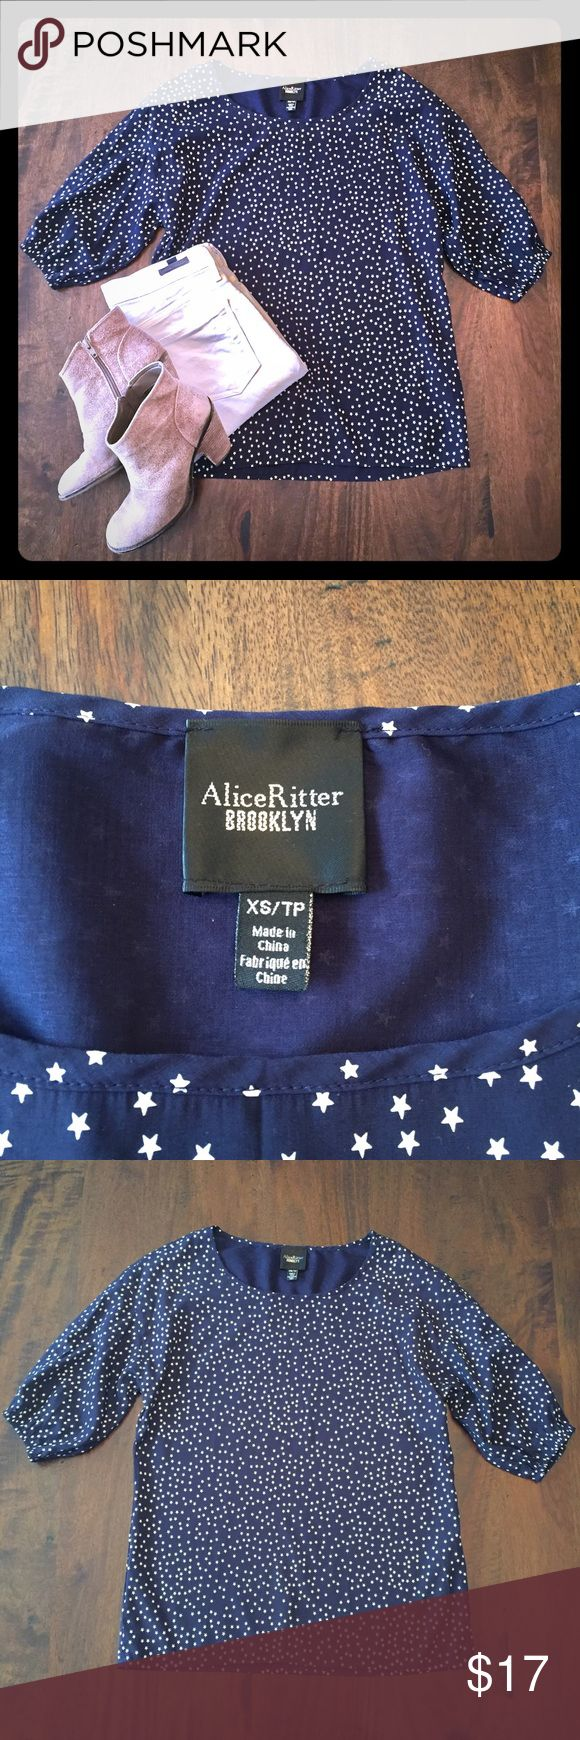 Alice Ritter BROOKLYN for GAP Navy Stars Blouse Alice Ritter BROOKLYN blouse originally purchased at GAP. Navy blue with white stars. This blouse is the perfect addition to your spring and summer wardrobe for a festive Memorial Day, 4th of July or Labor Day picnic. 54% polyester / 46% rayon. Crew / scoop neck. 3/4 length sleeves with elastic creates a casual relaxed look. Size XS but relaxed fit would fit a Small. GAP Tops Blouses